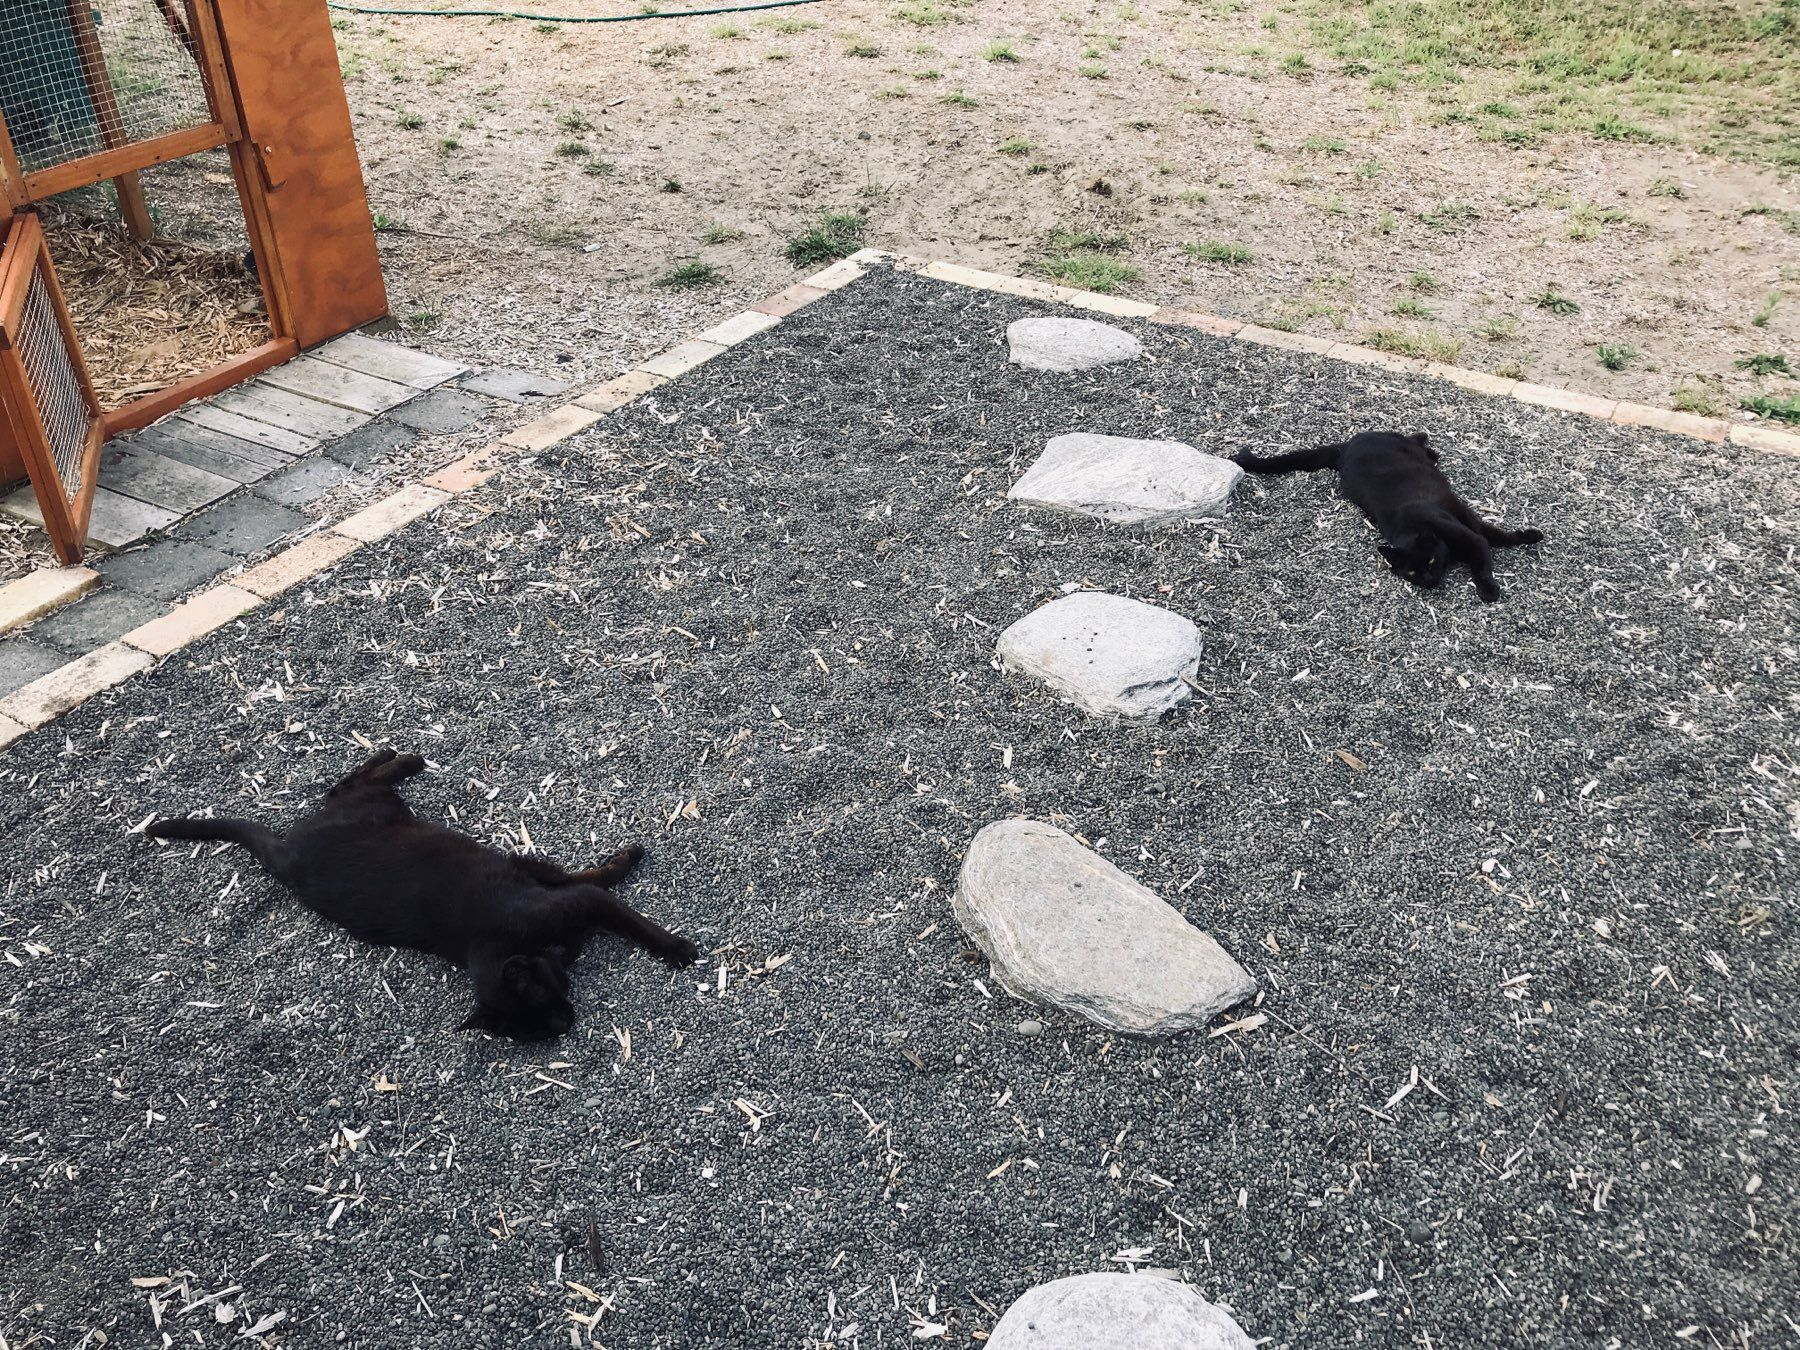 Two black cats sprawled on gravel.